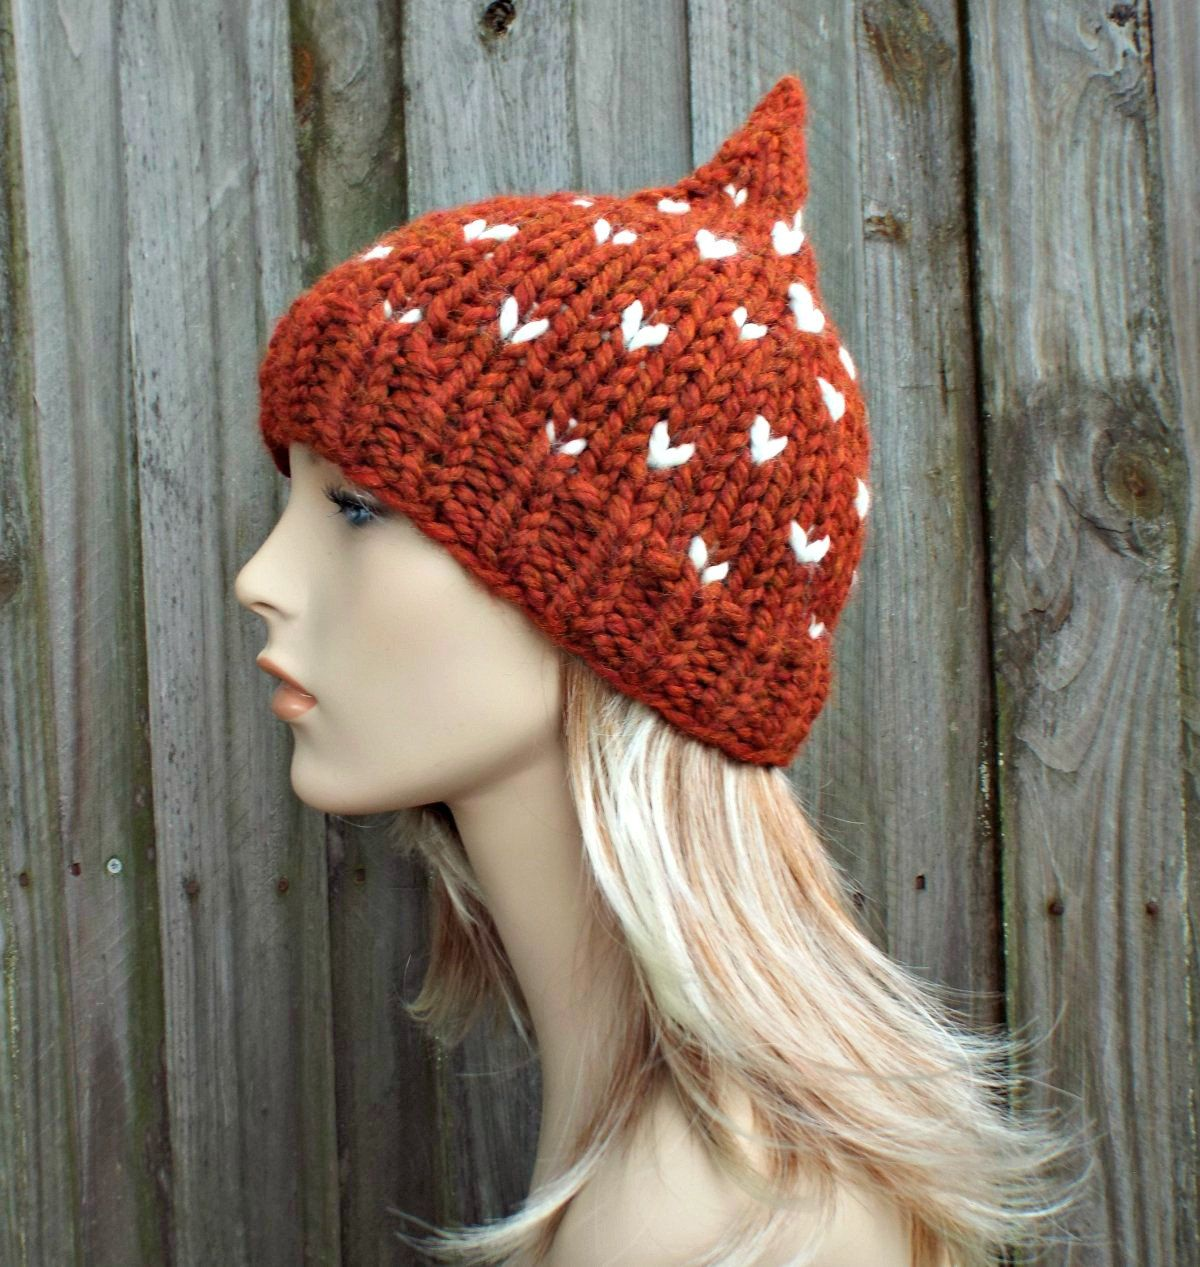 4456a29eac6 Burnt Orange Gnome Hat - Orange Knit Hat Orange Womens Hat Orange Beanie  Orange Hat - Orange Winter Hat - READY TO SHIP by pixiebell on Etsy